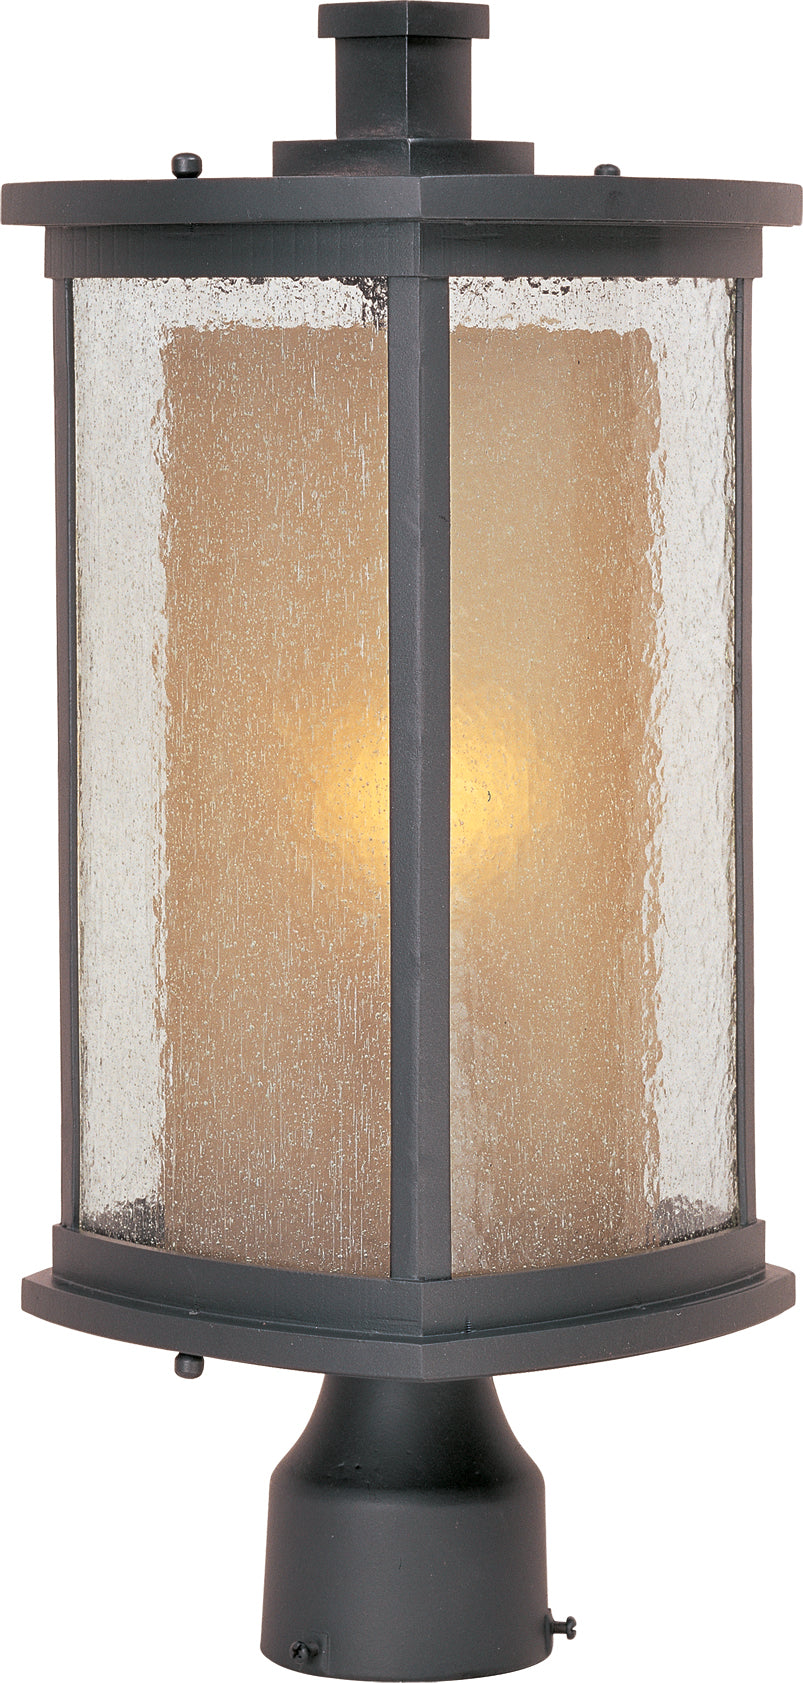 Bungalow 1-Light Outdoor Pole/Post Lantern